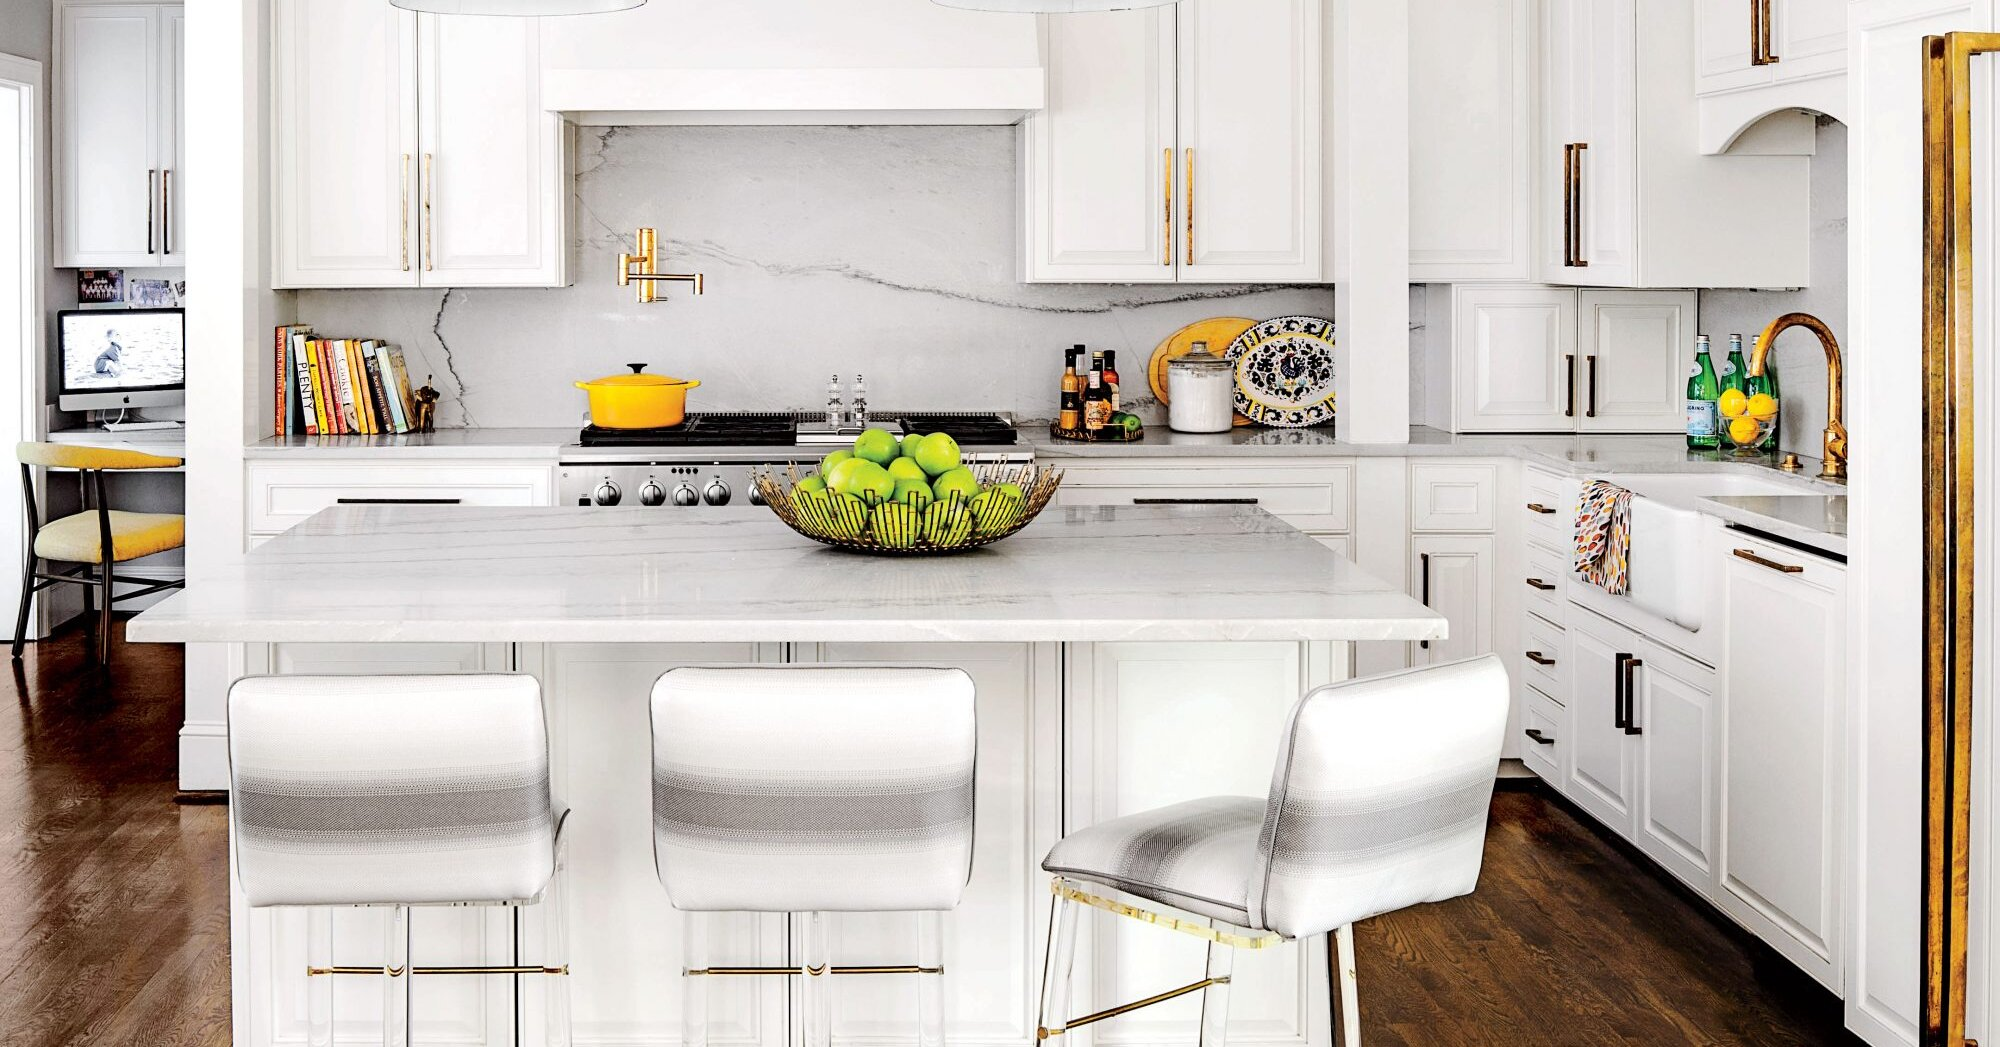 The 5 Things You Should Know Before Choosing Stone Countertops | Southern  Living